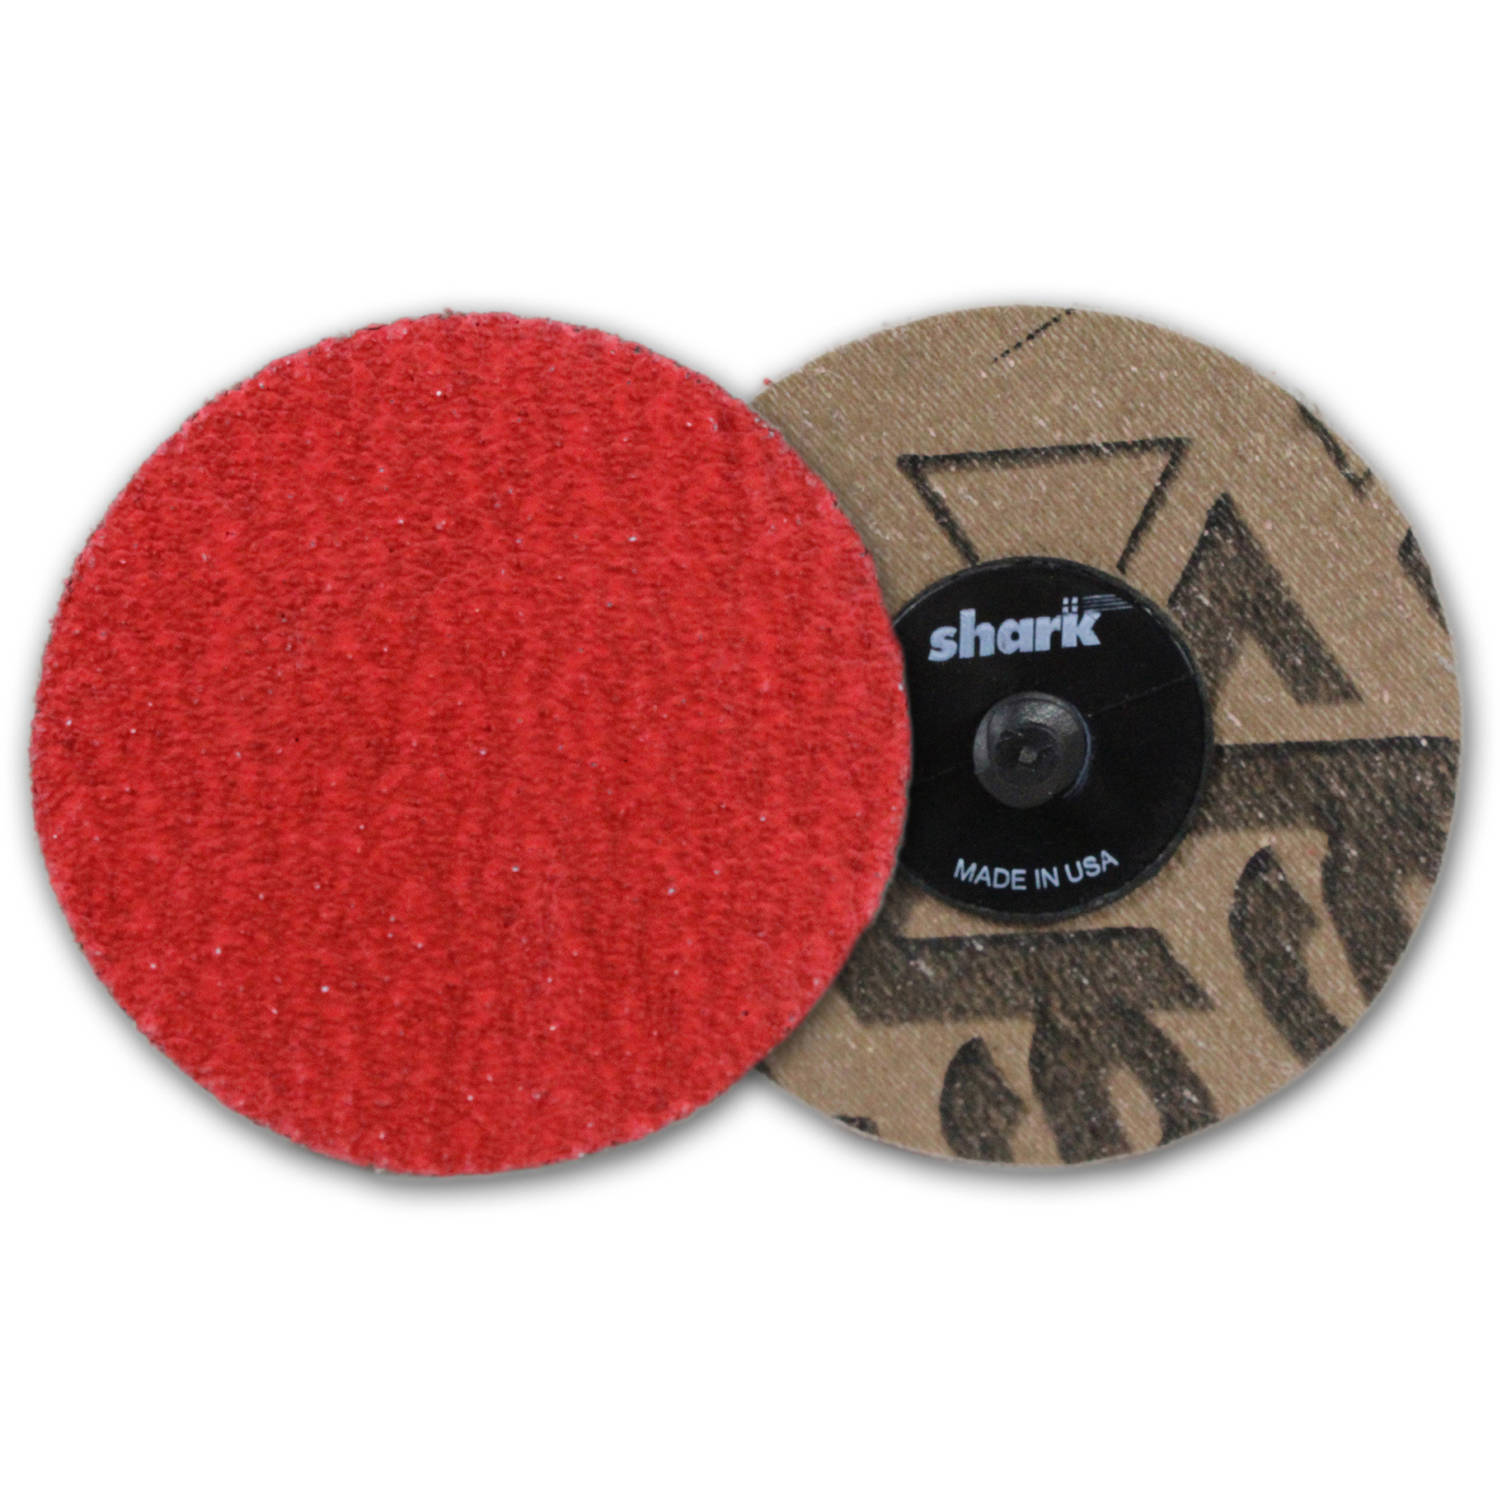 "Shark Red Ceramic Grinding Discs, 3"", 25-Pack, 50 Grit"